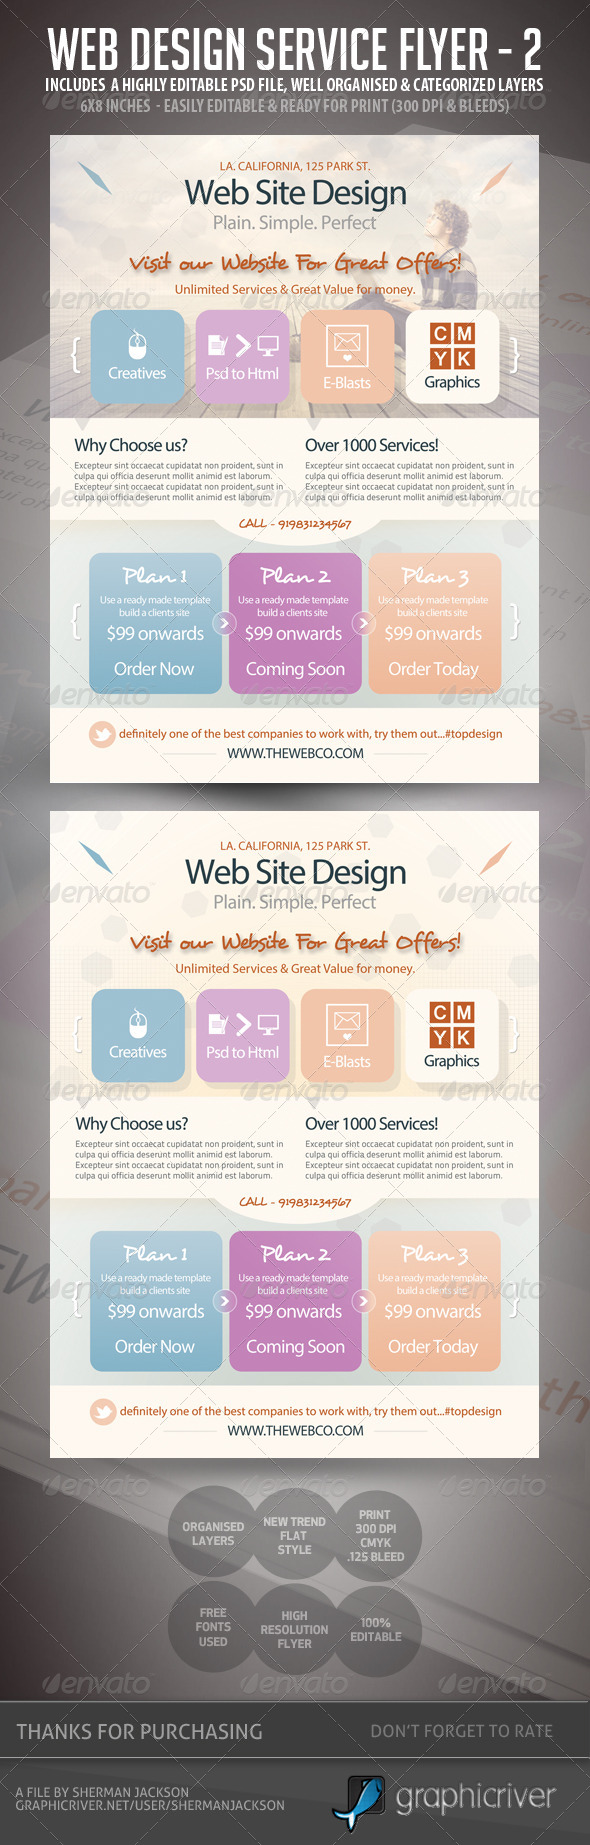 GraphicRiver Web Design Flyers Set 2 Flat Style 5676210